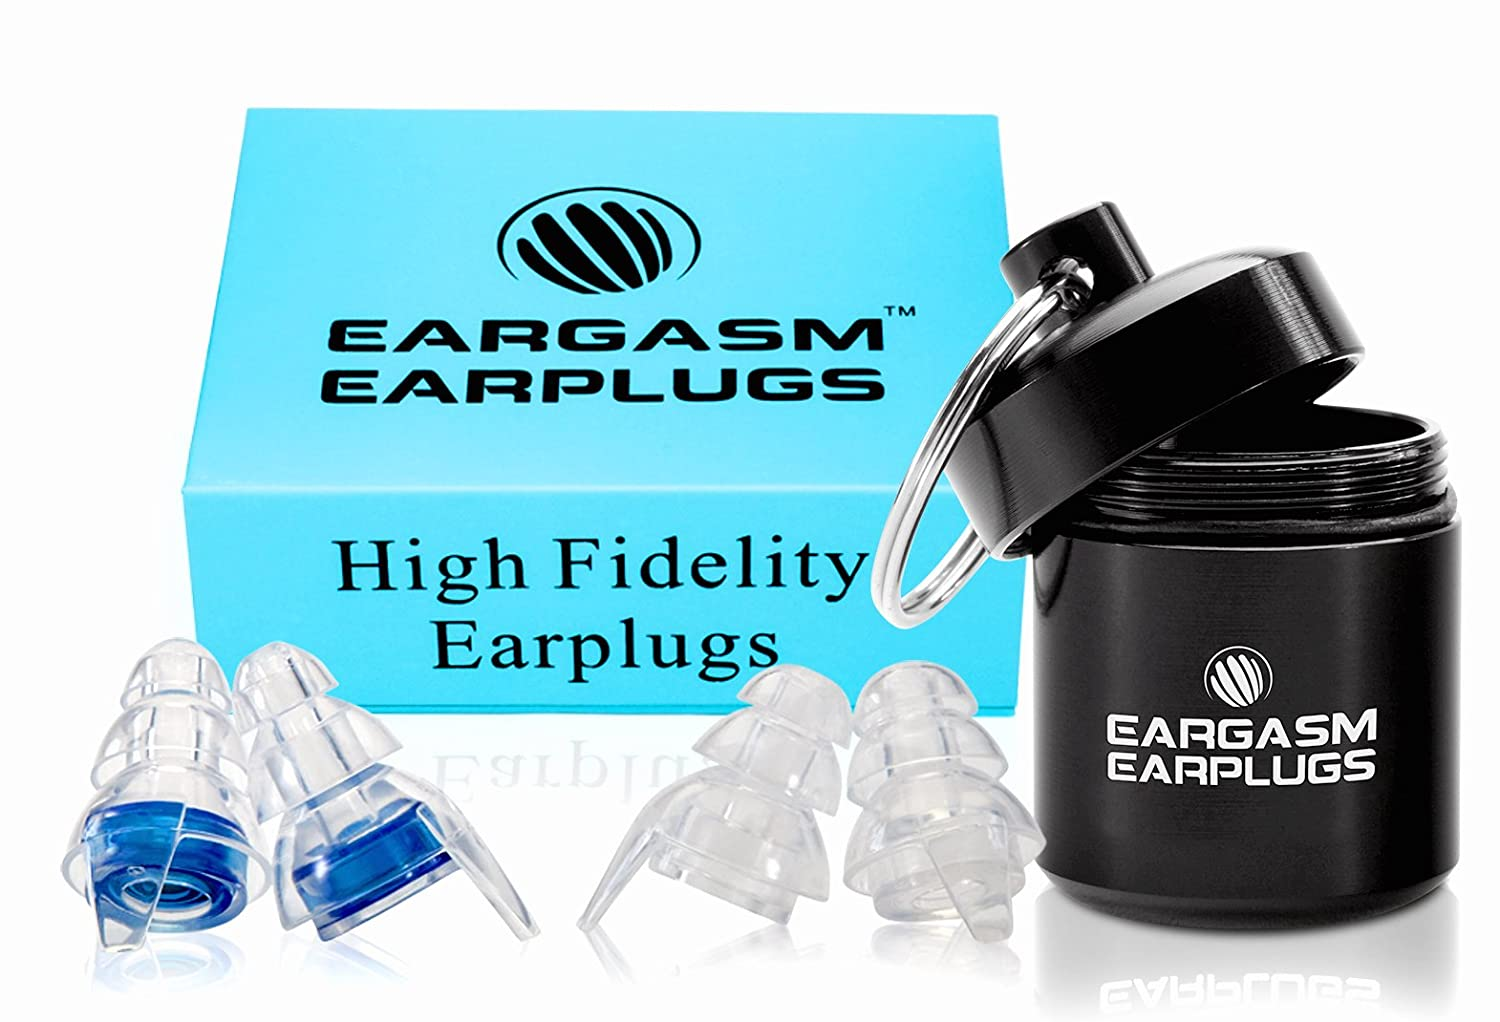 Eargasm High Fidelity Earplugs for Concerts Musicians Motorcycles and More! by Eargasm   B019M576XW